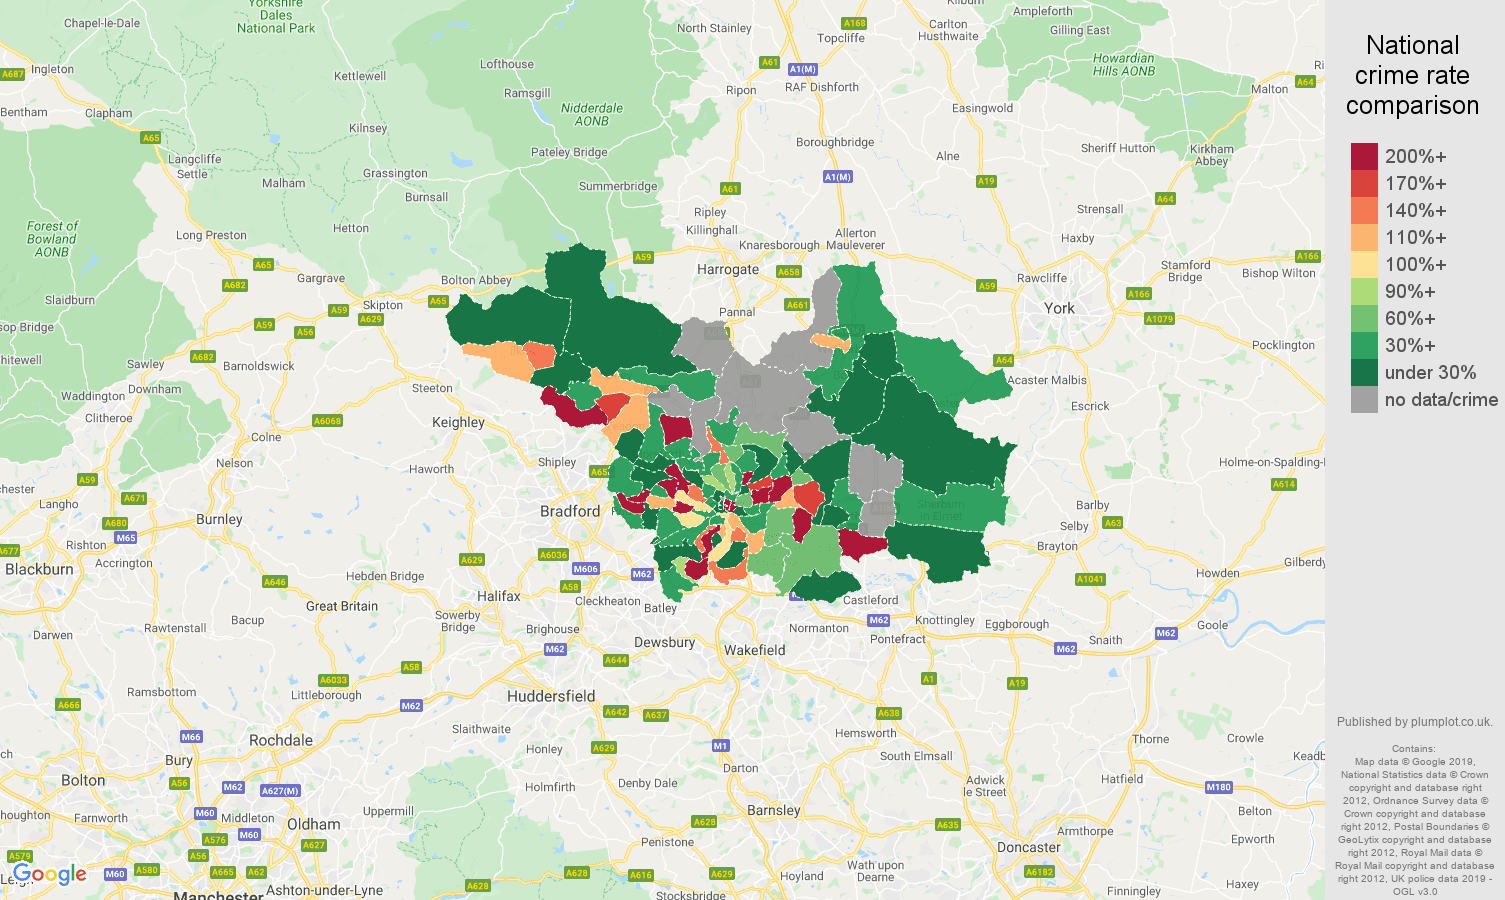 Leeds shoplifting crime rate comparison map